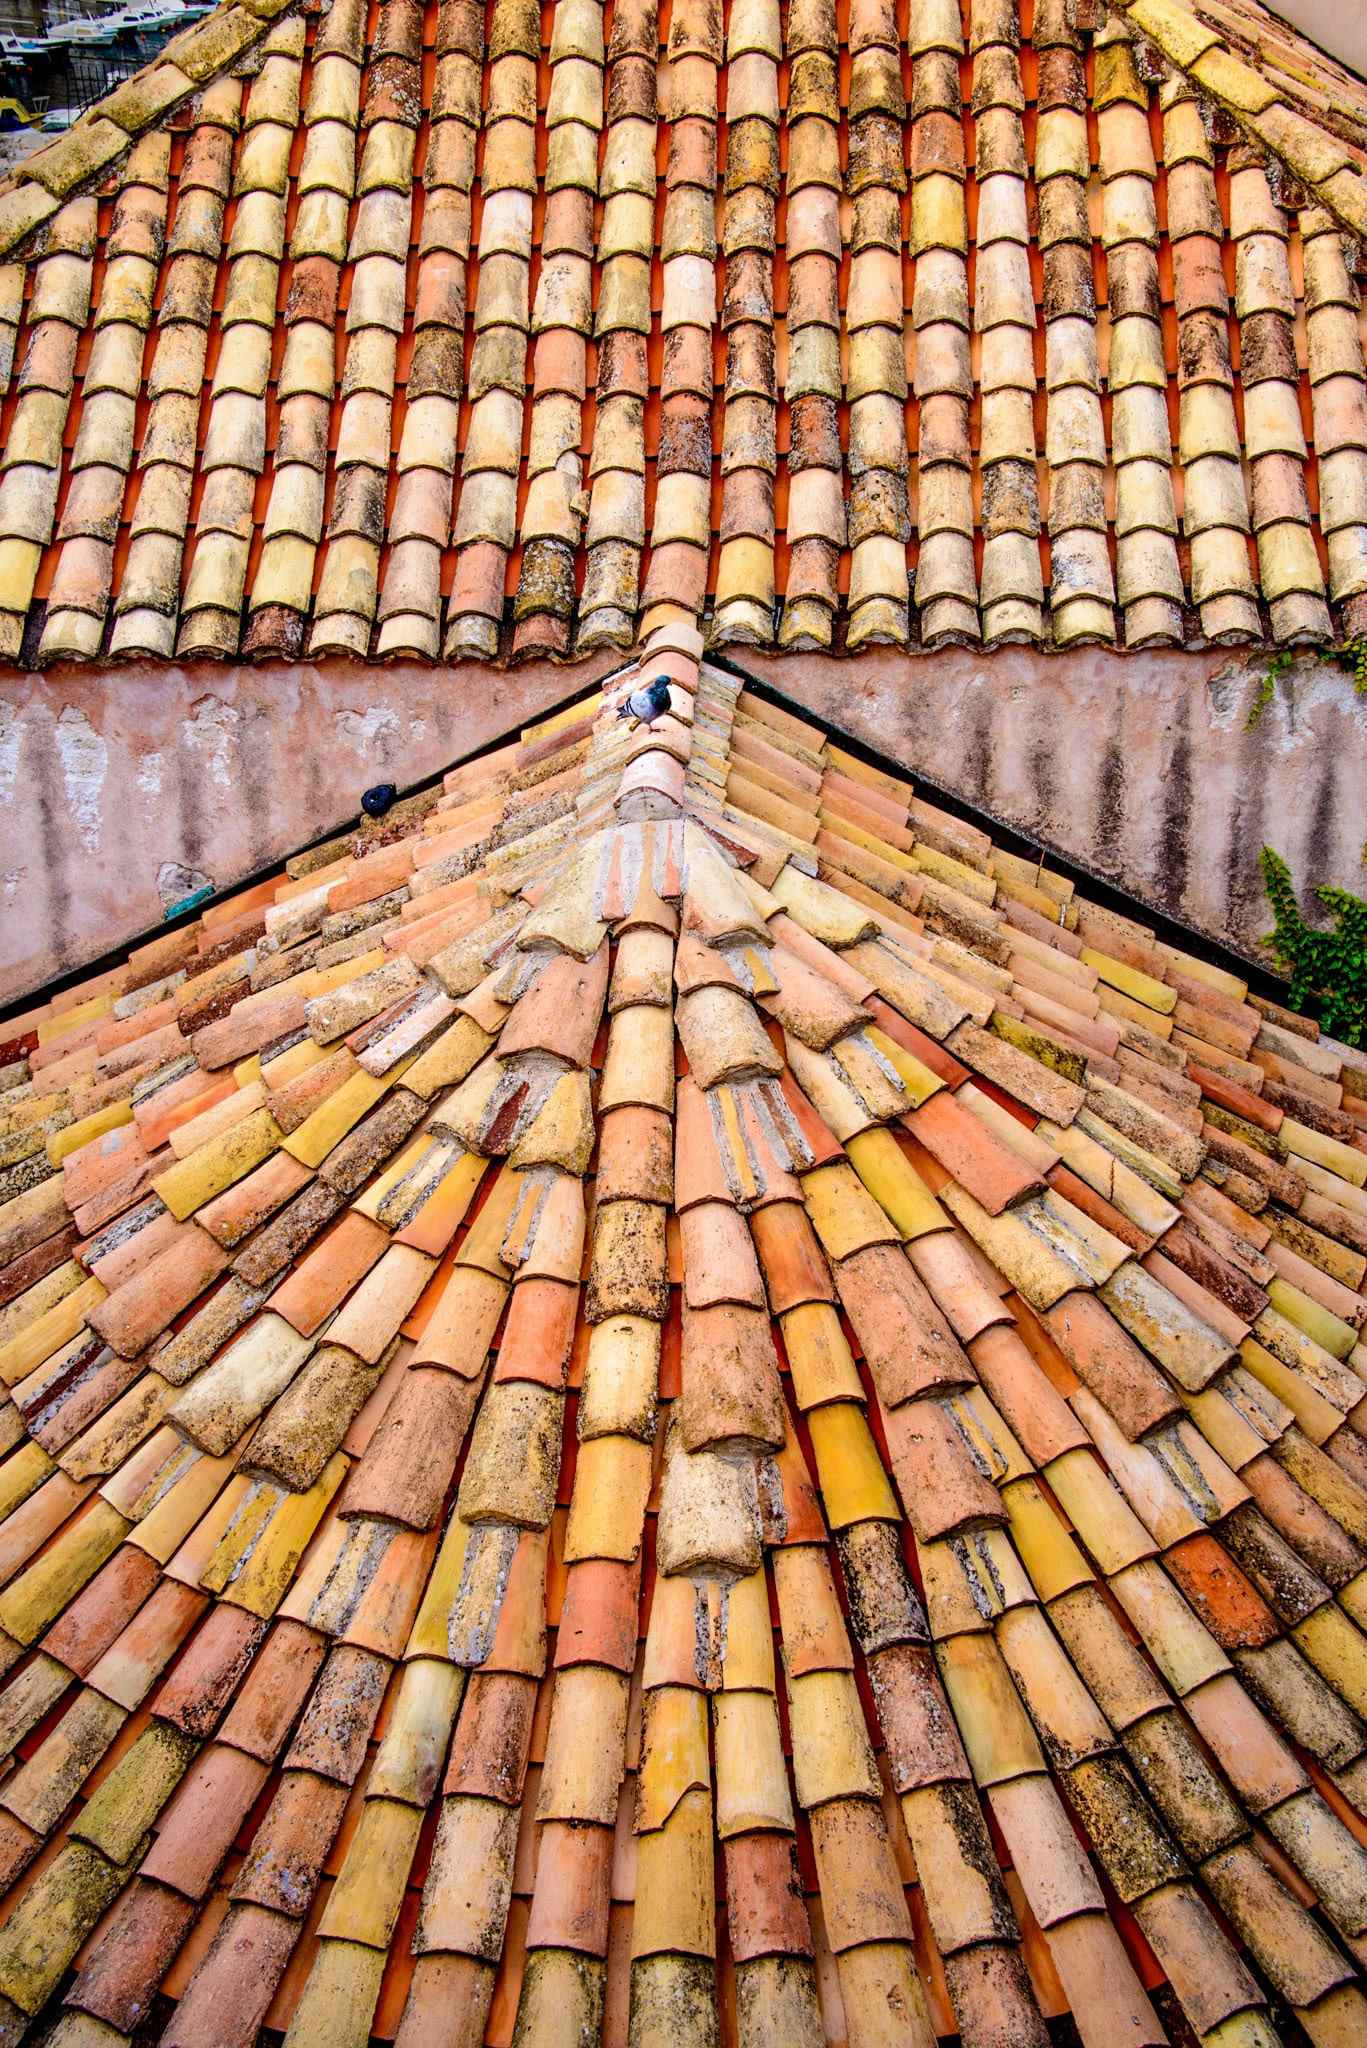 A detail shot of red roof tiles taken from the wall surrounding Dubrovnik Old City in Croatia.